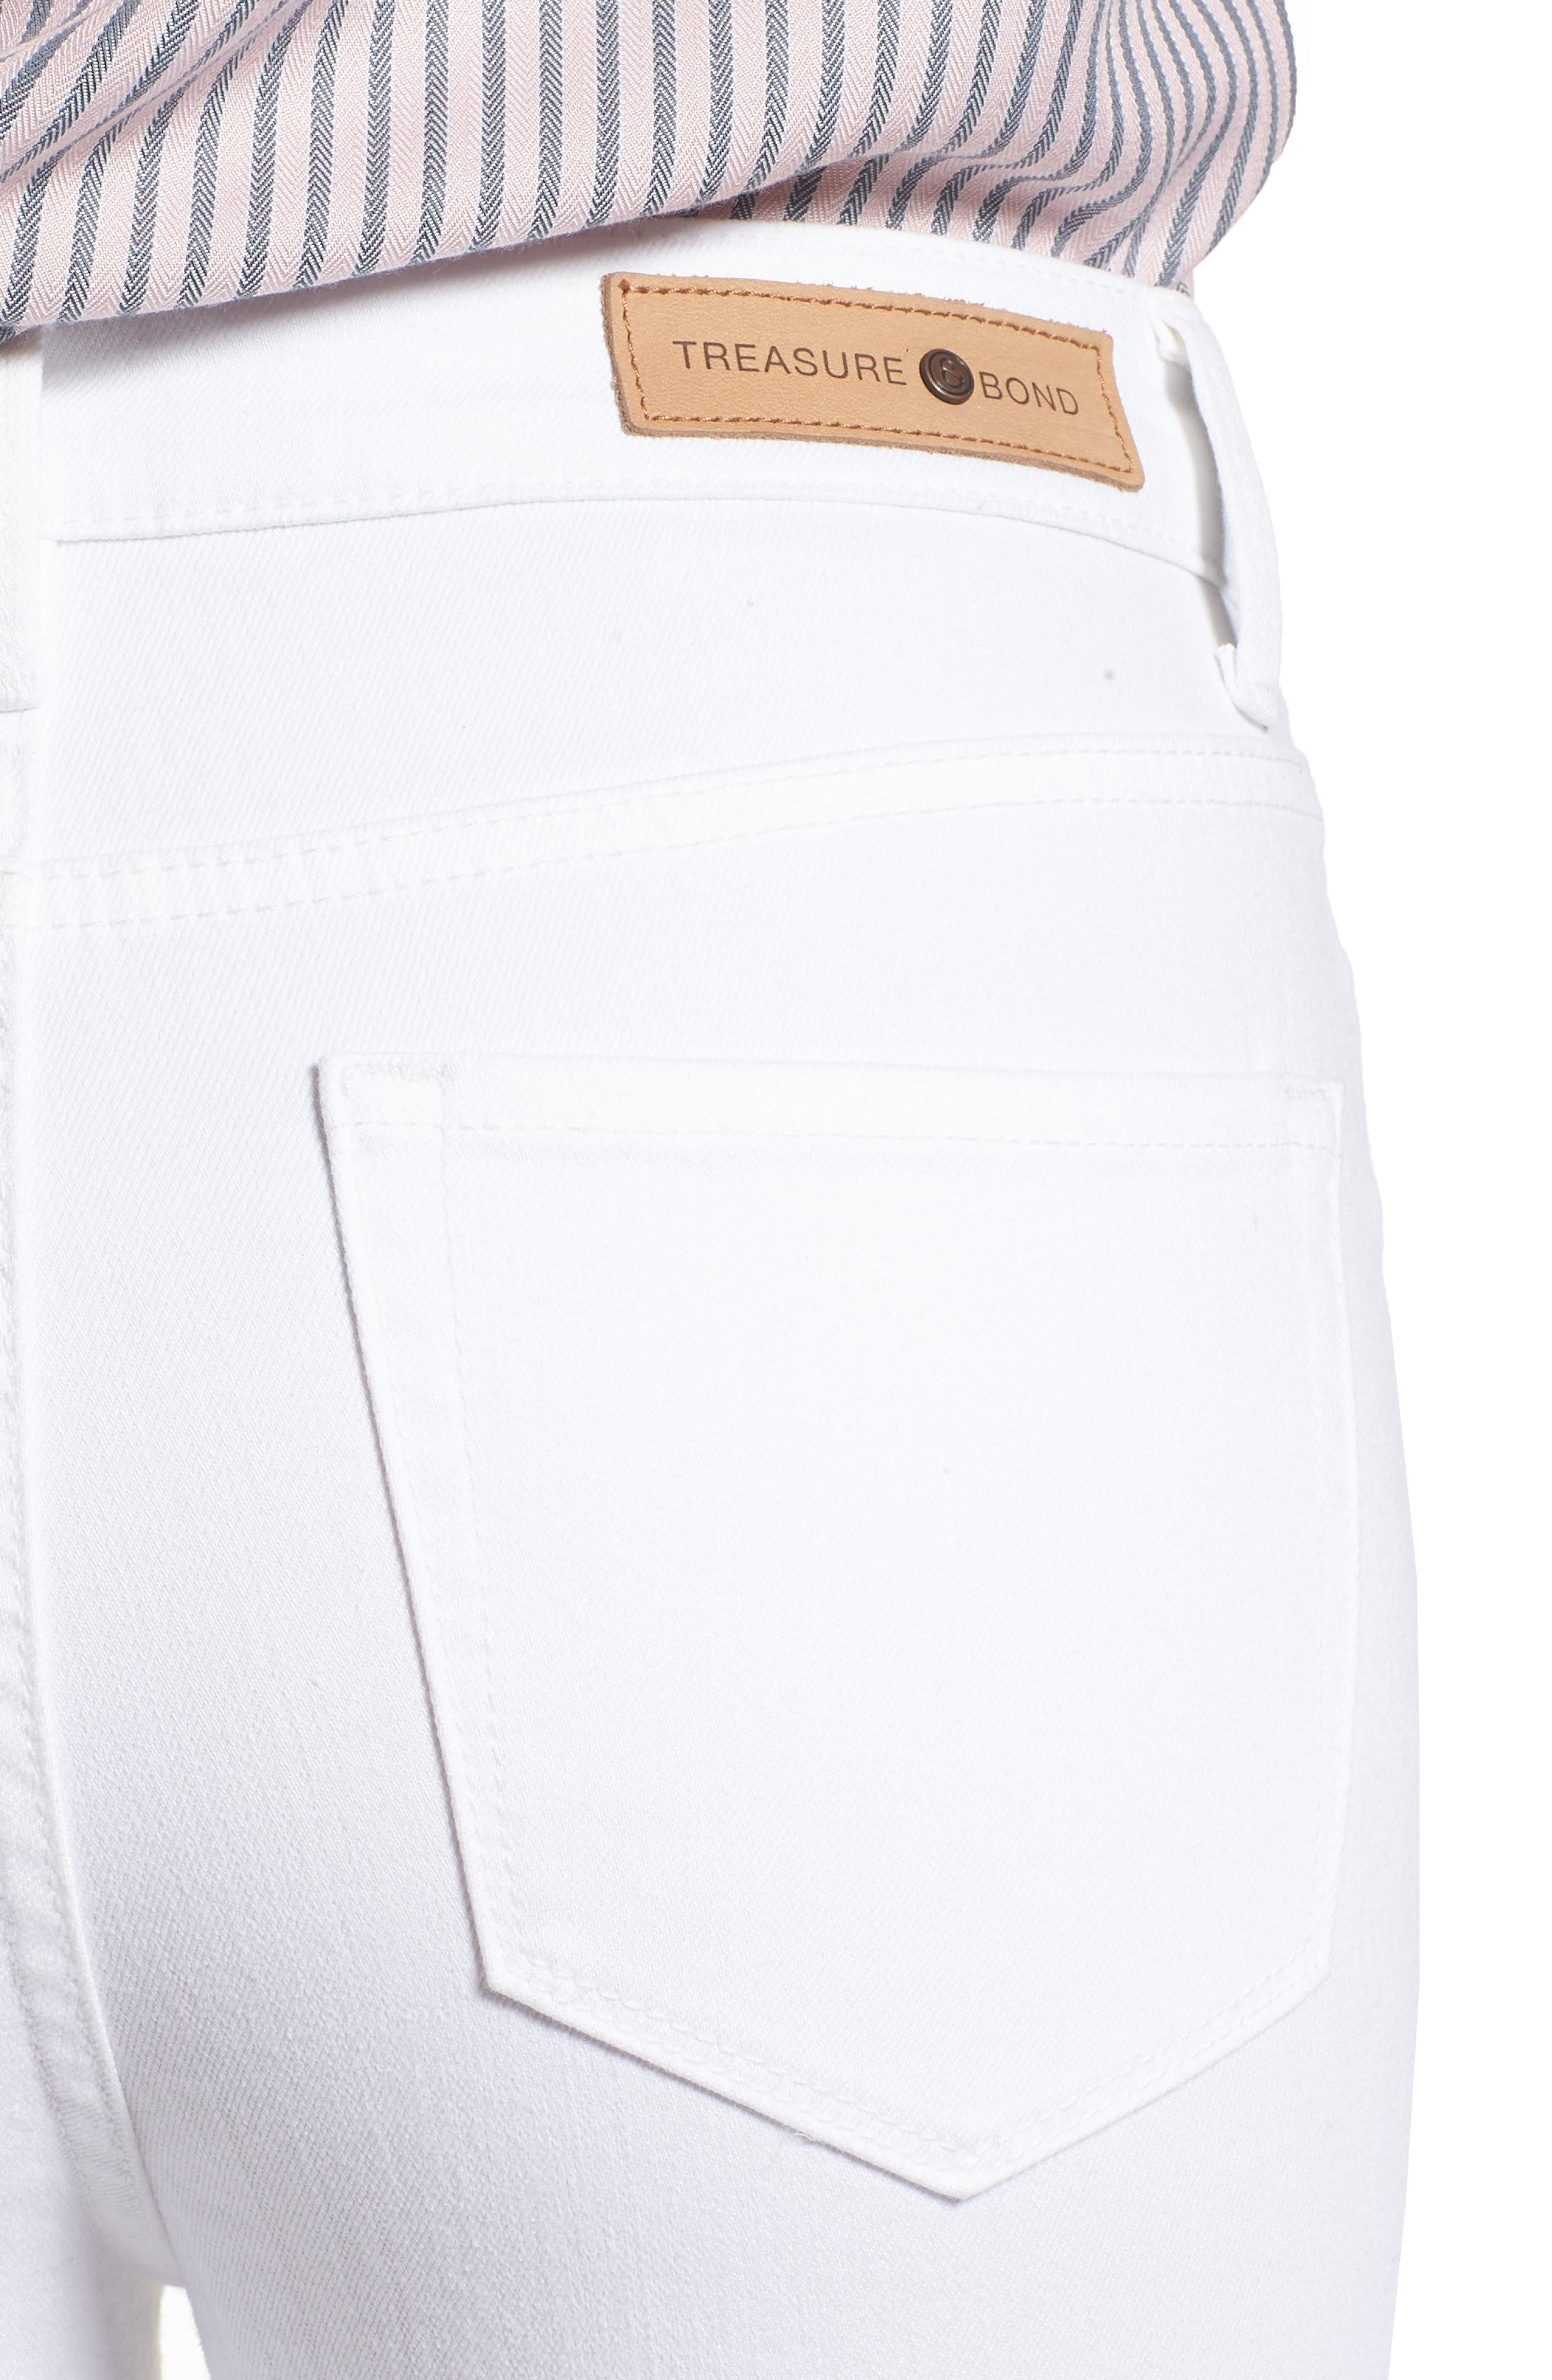 Charity High Waist Crop Skinny Jeans,                             Alternate thumbnail 4, color,                             White